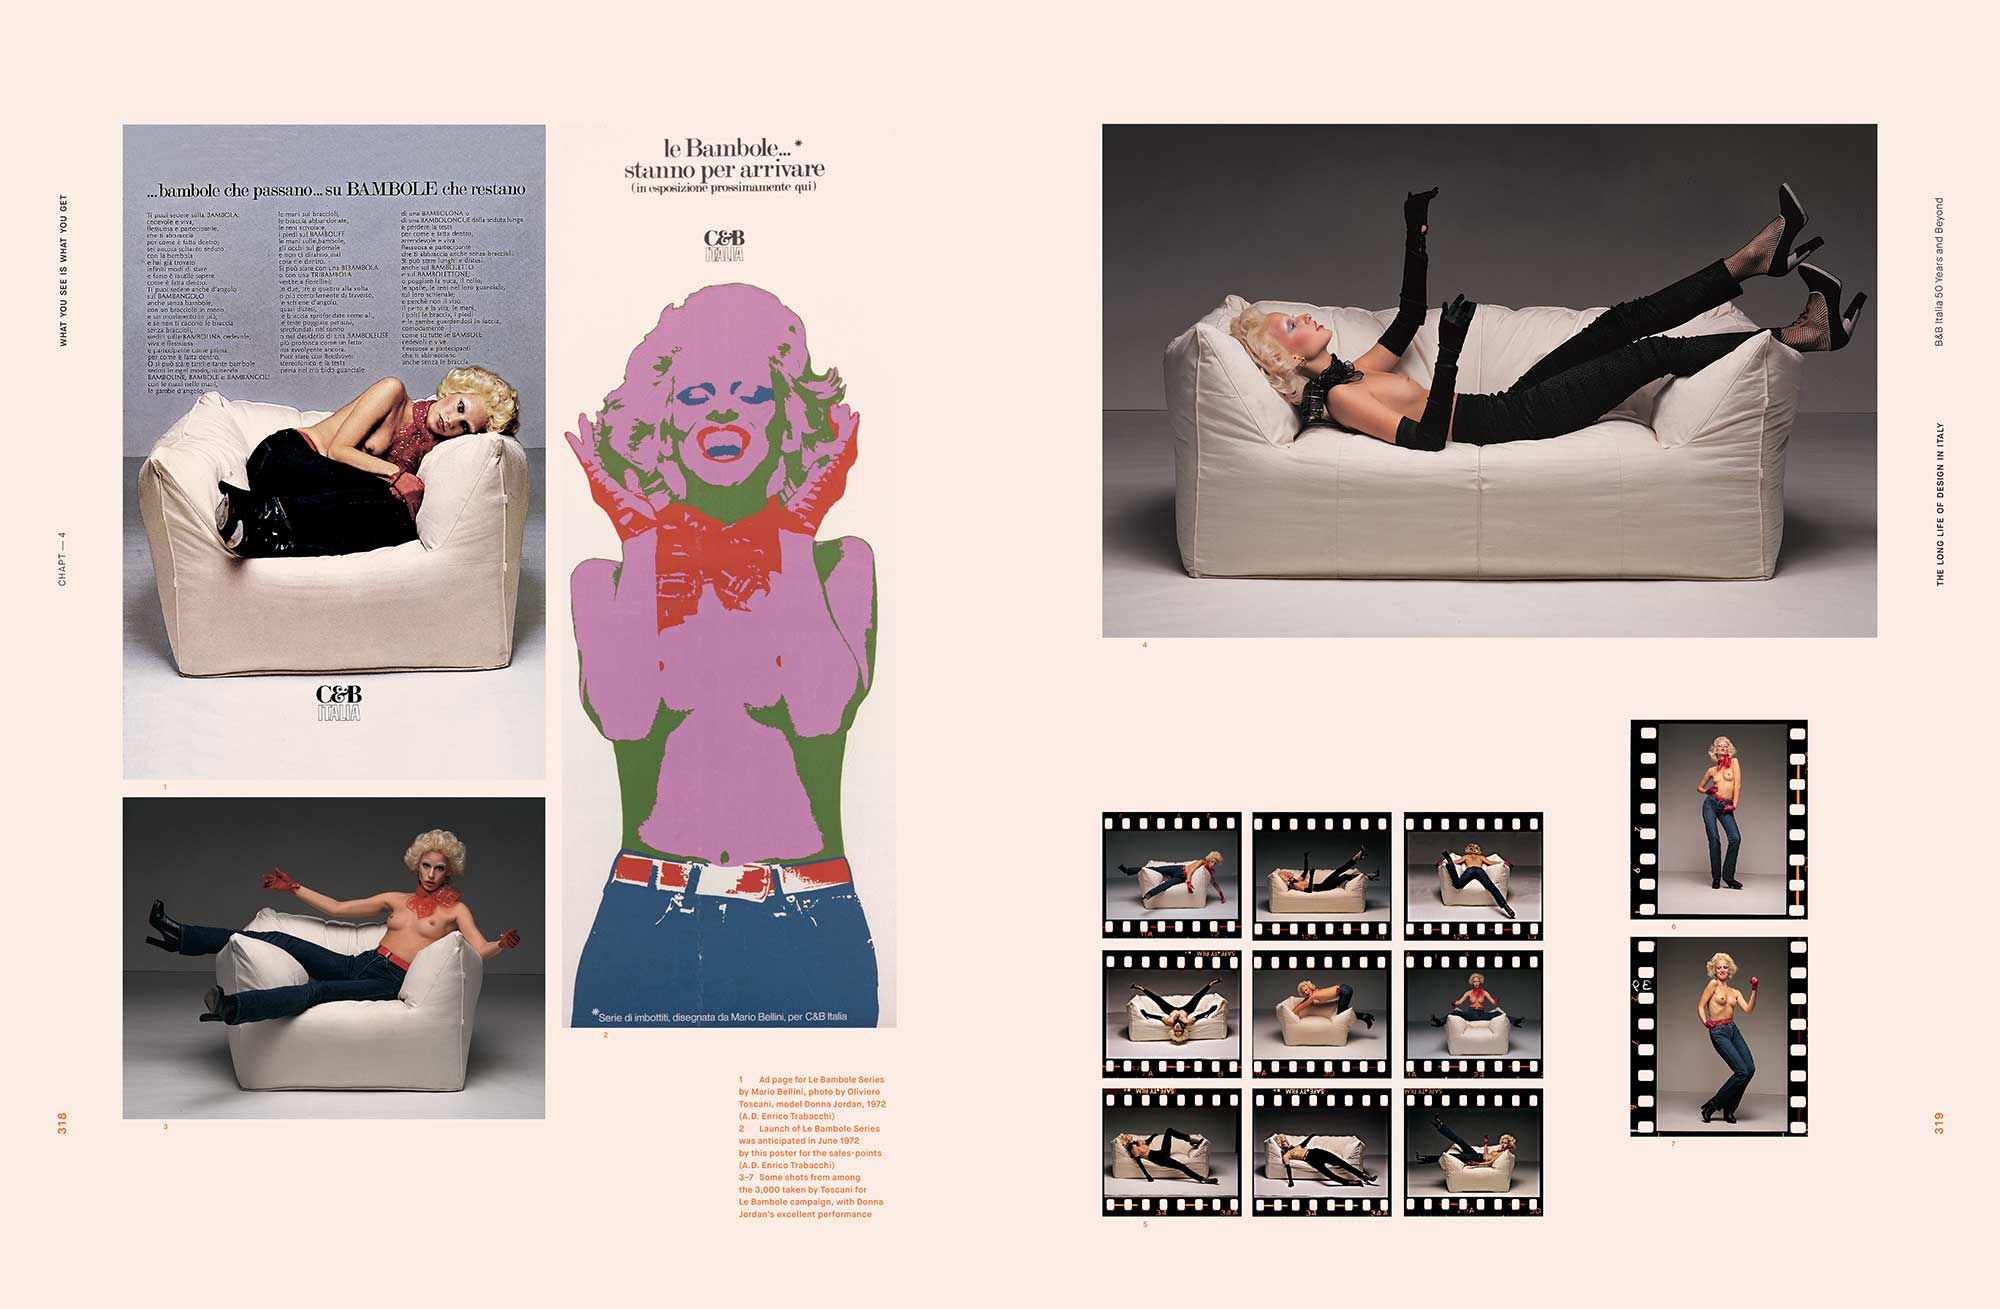 Some historic pictures of the Le Bambole, designed by Mario Bellini in 1970-1972, feature in B&B Italia's latest book,  The Long Life of Design in Italy: B&B Italia 50 Years and Beyond .